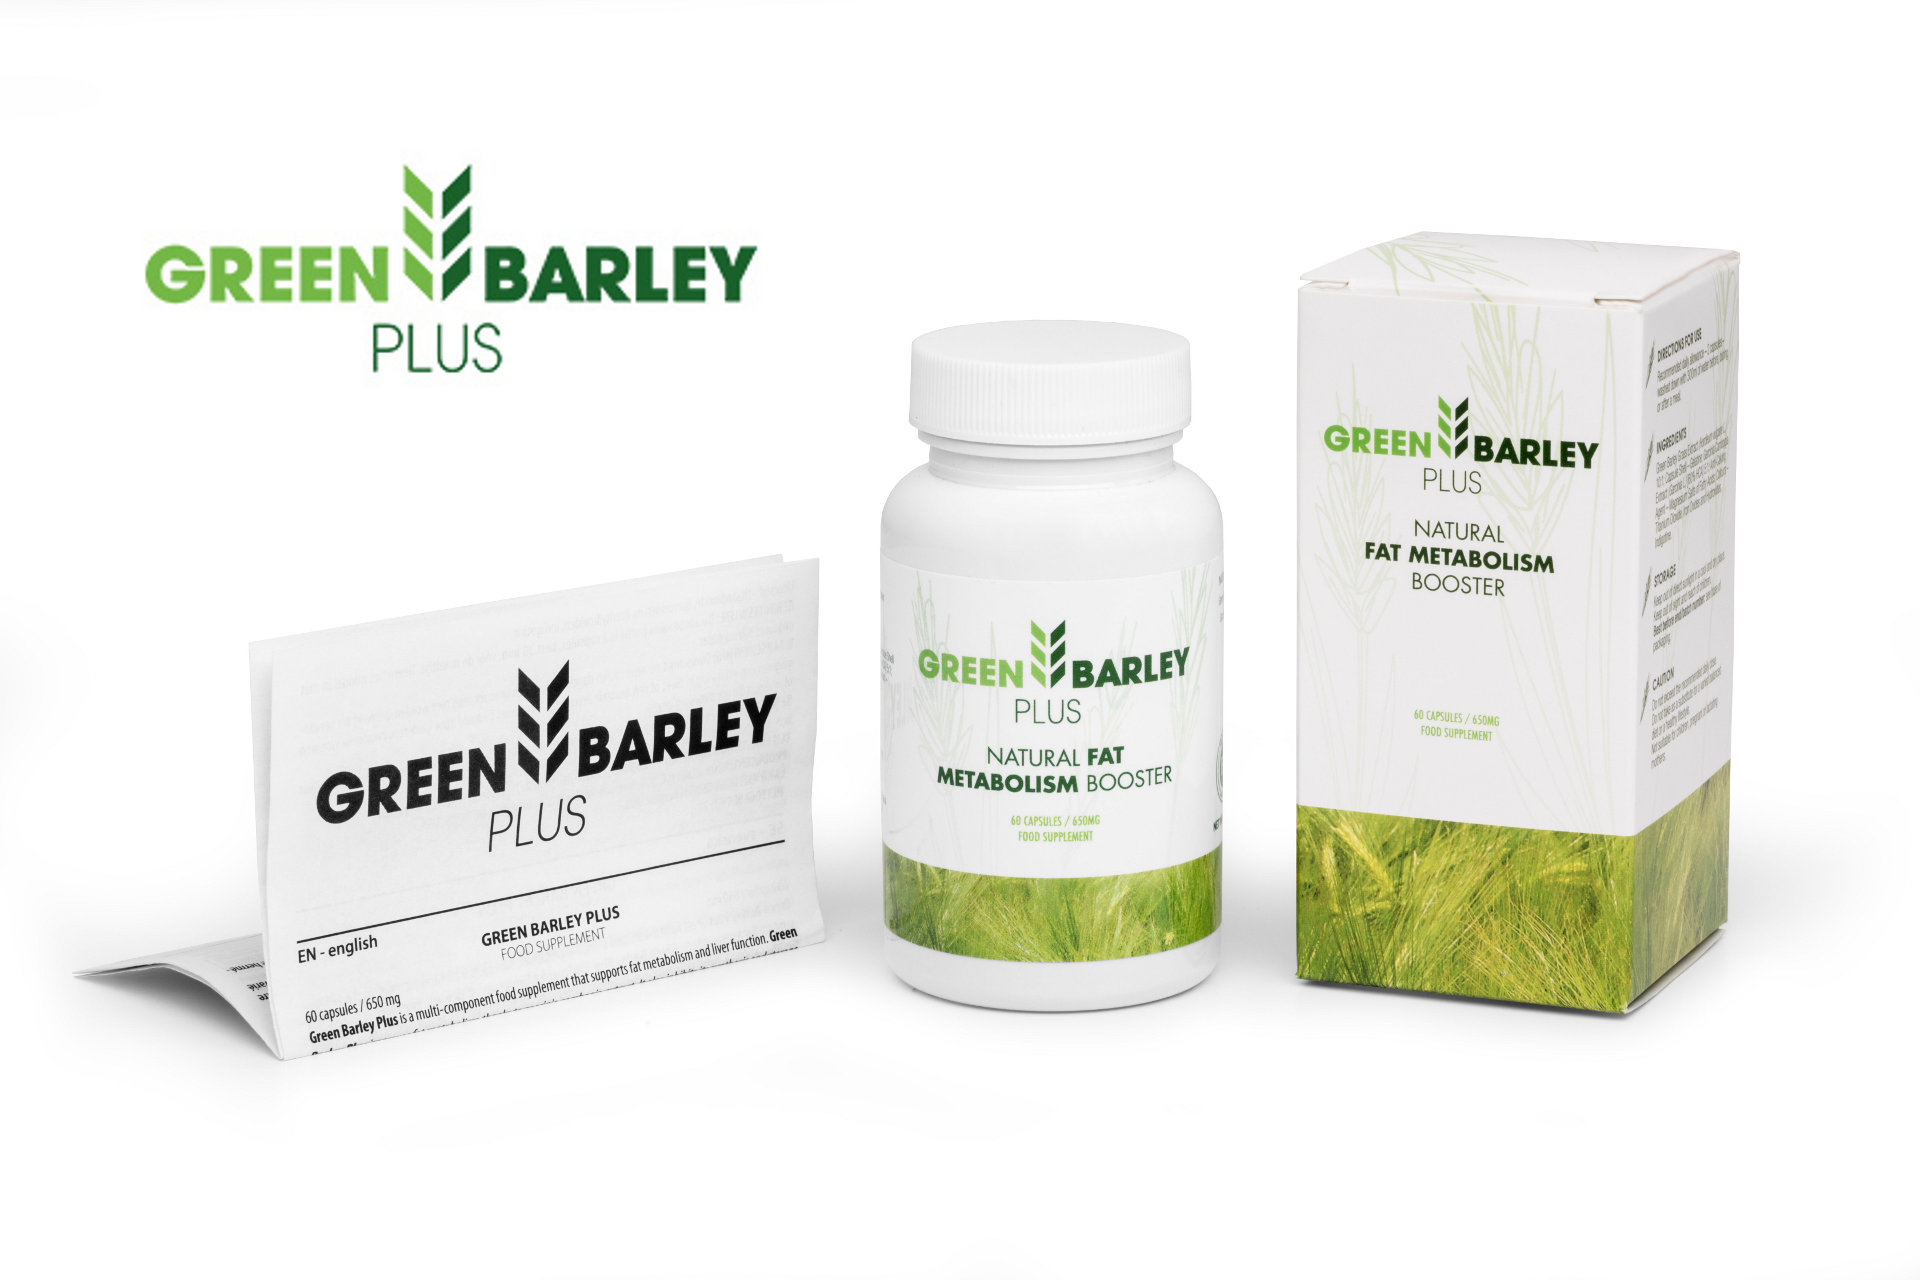 green barley plus cena apteka